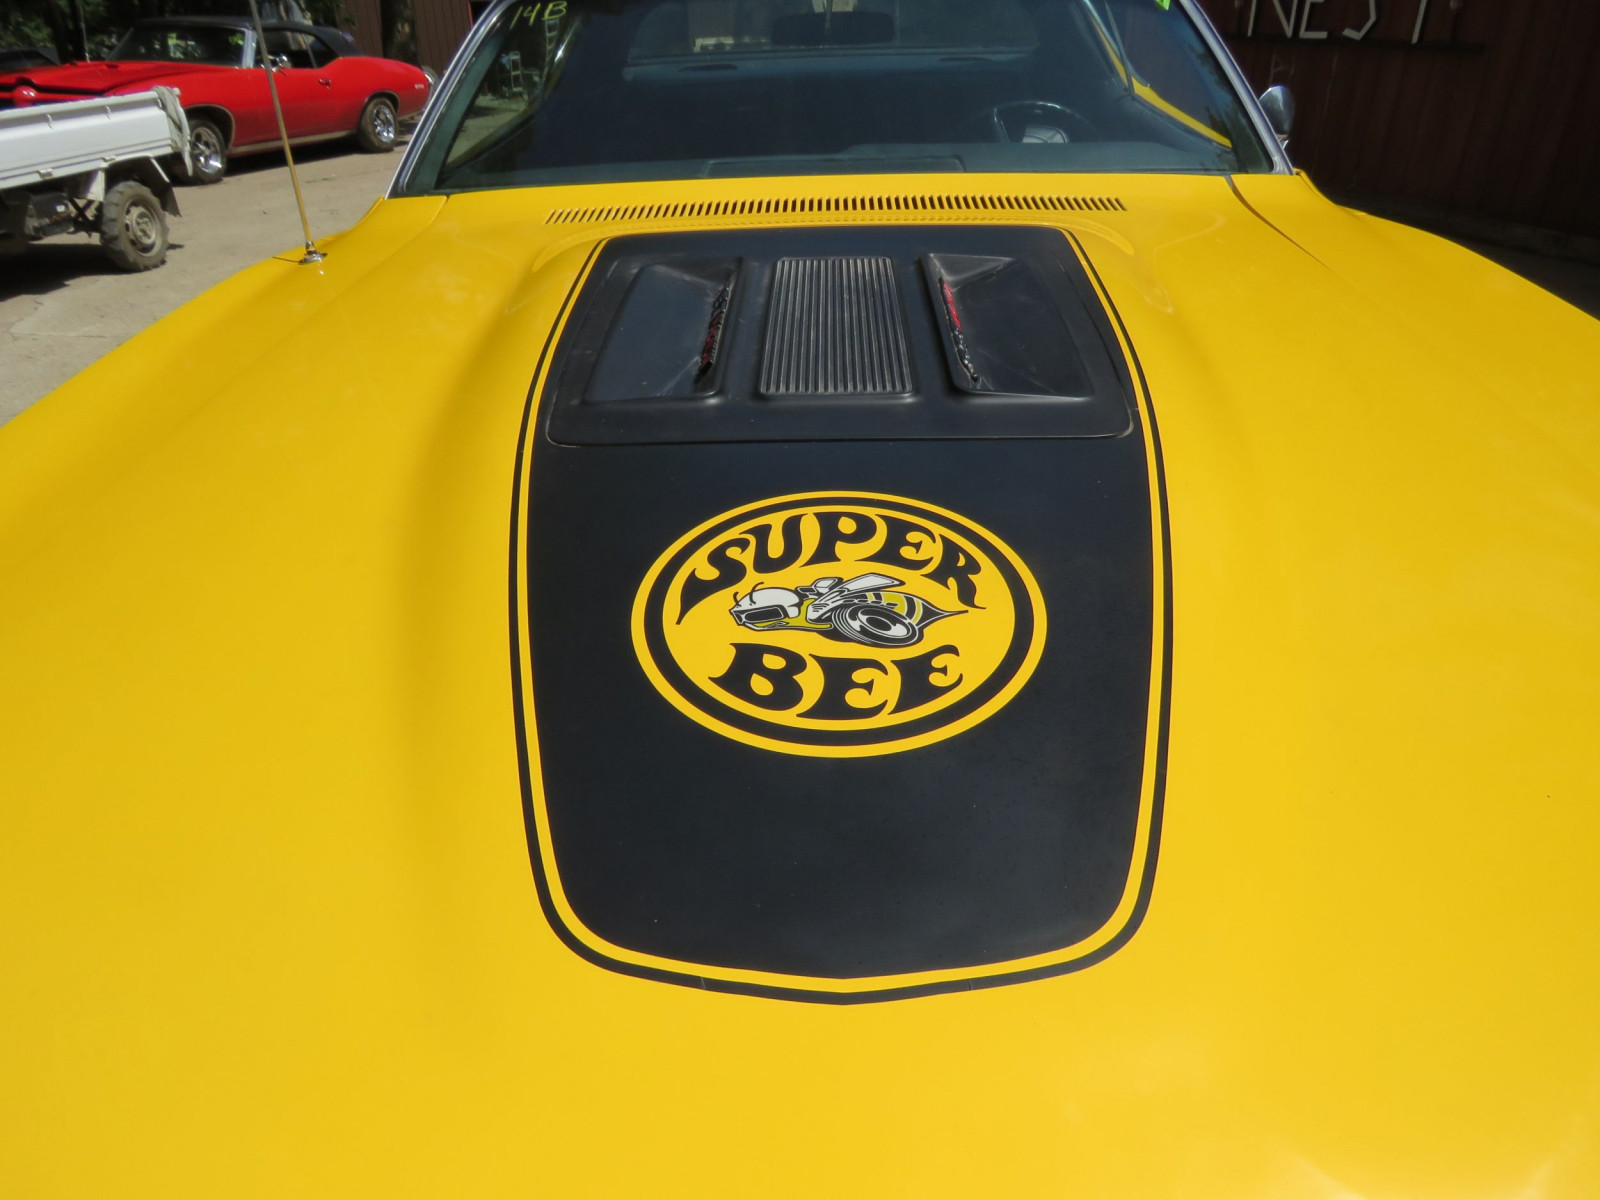 1971 Dodge  Super Bee - Image 7